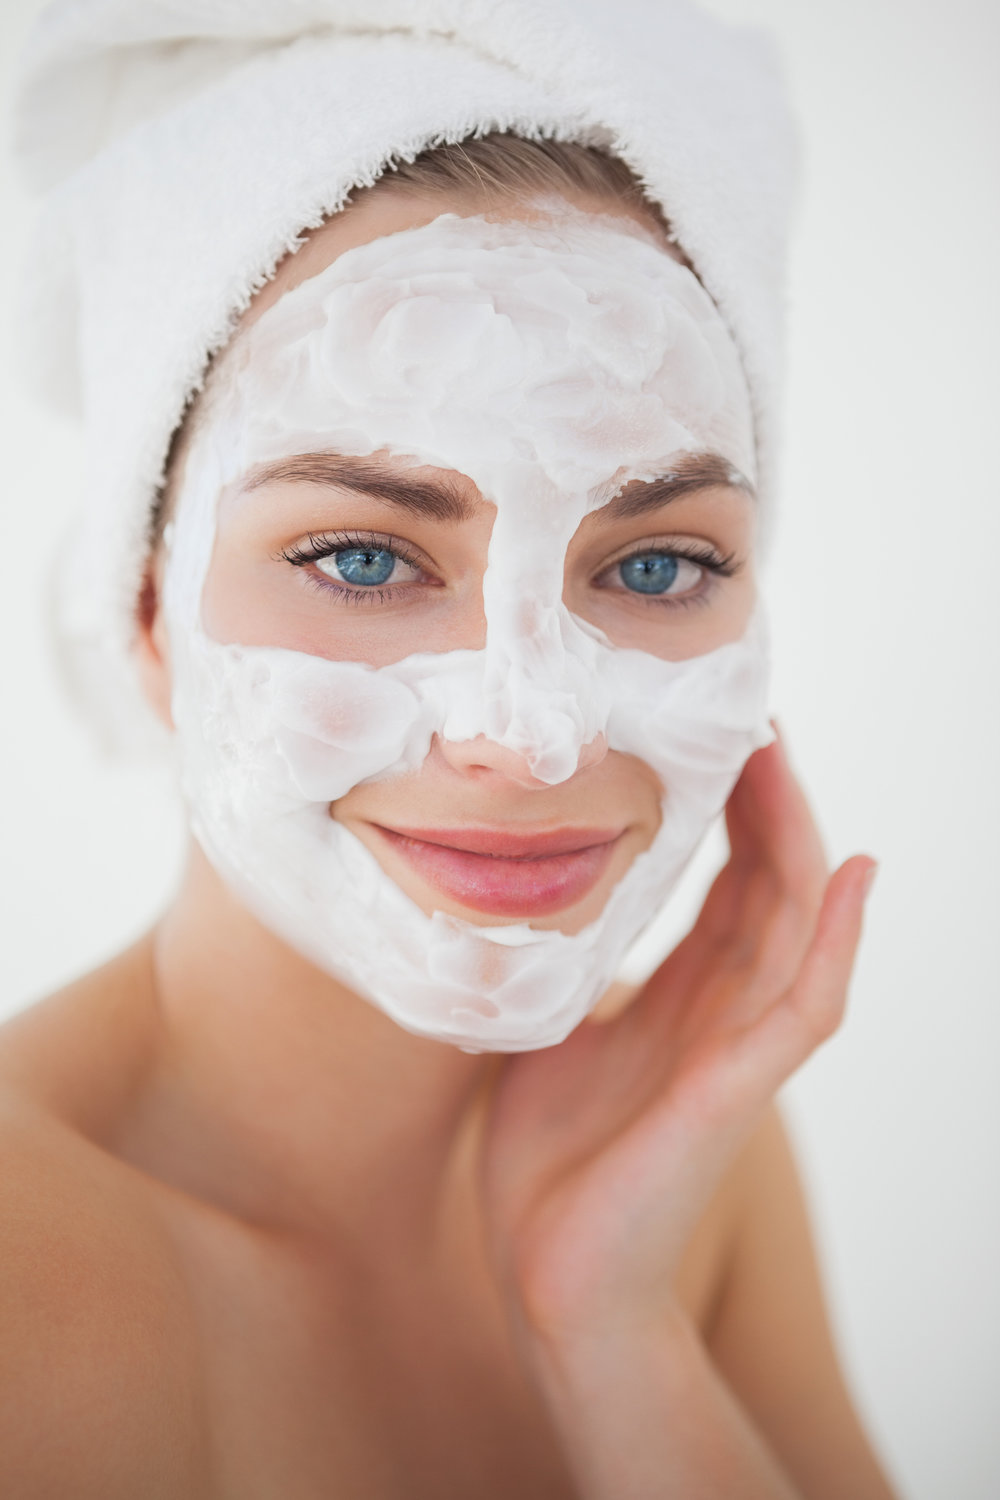 75 min | $175.00 - Reverse sun damage with this ultra skin lightening facial. Sun damage and hyperpigmentation are minimized and broken down using Vitamin C, Licorice Root, and Kojic Acid. To top things off, our crown jewel, The Heal & Protect Chemical Peel with Hydroquinone - leaving your skin even, bright and hydrated.Deep Cleanse, Exfoliation, Vitamin C Mask, Heal & Protect Chemical Peel and Dewy Lip Treatment.- also including facial, neck & shoulder massage -(Hydroquinone free peel is also available)